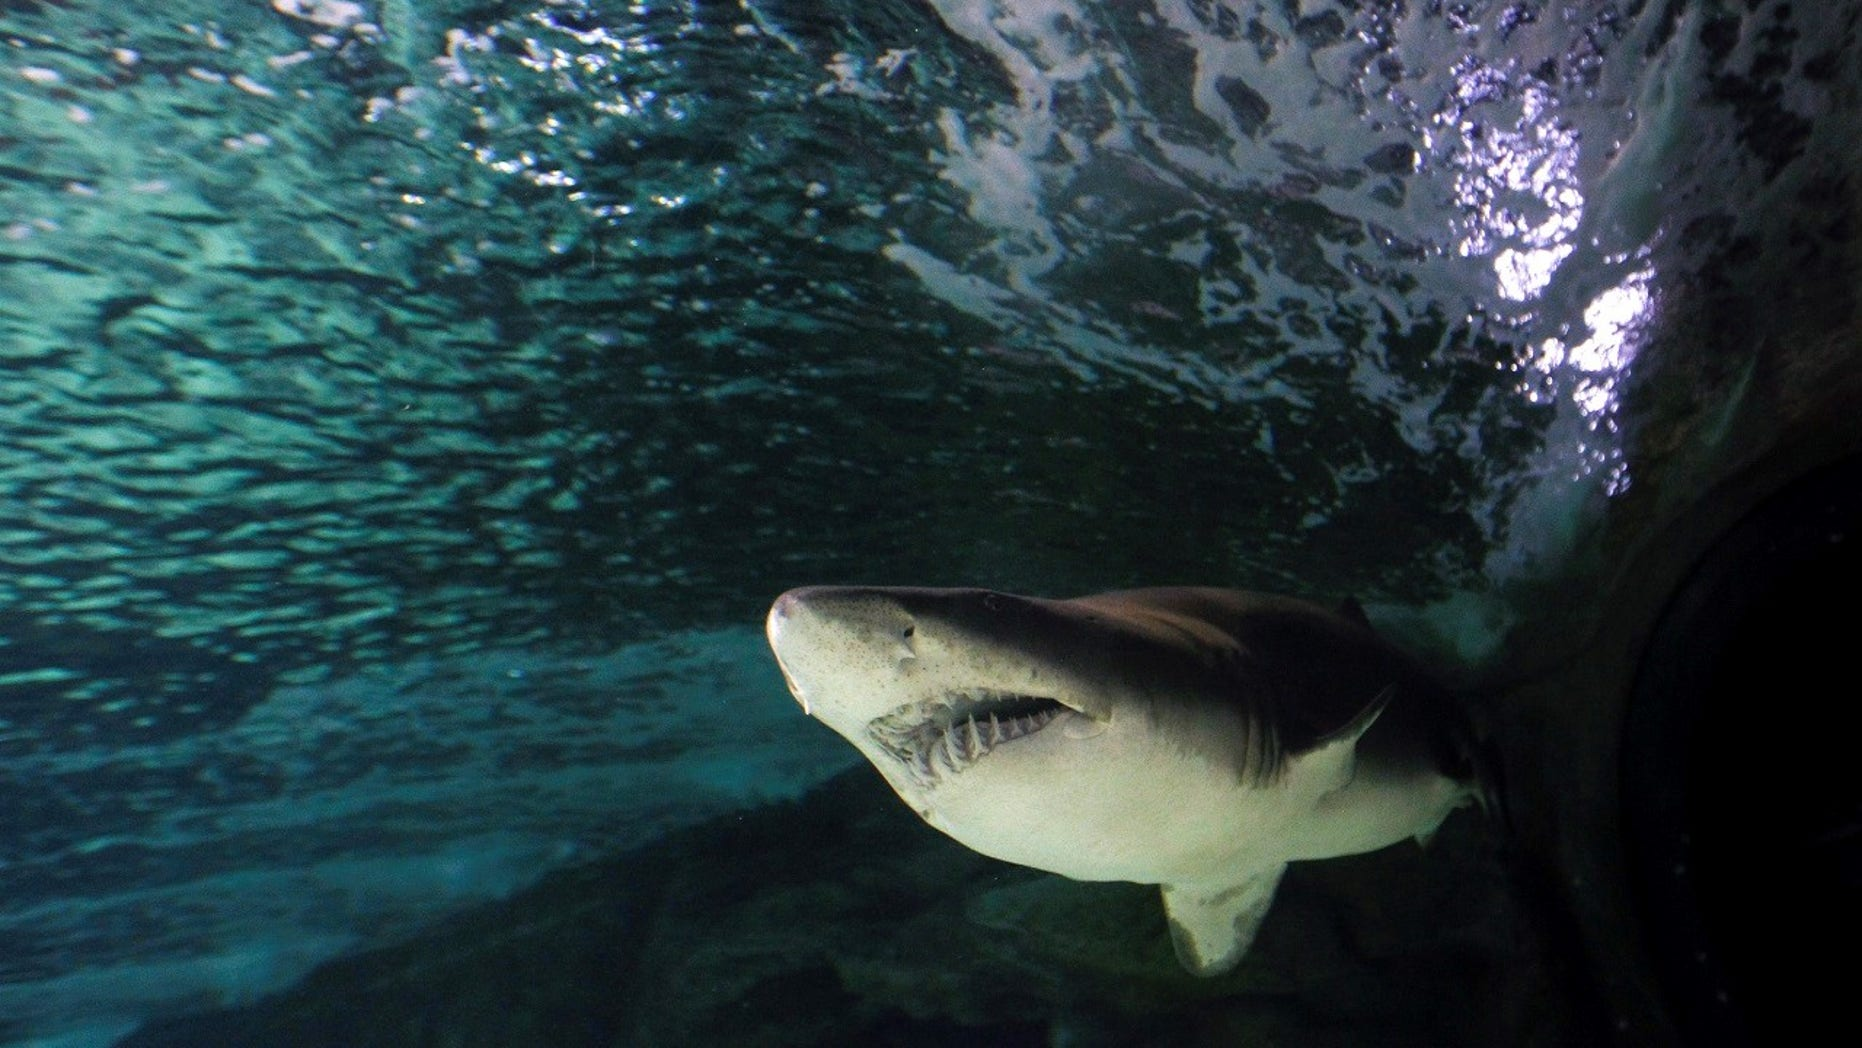 A British diver said a tiger shark stalked him while he swam four miles to short in Western Australia.